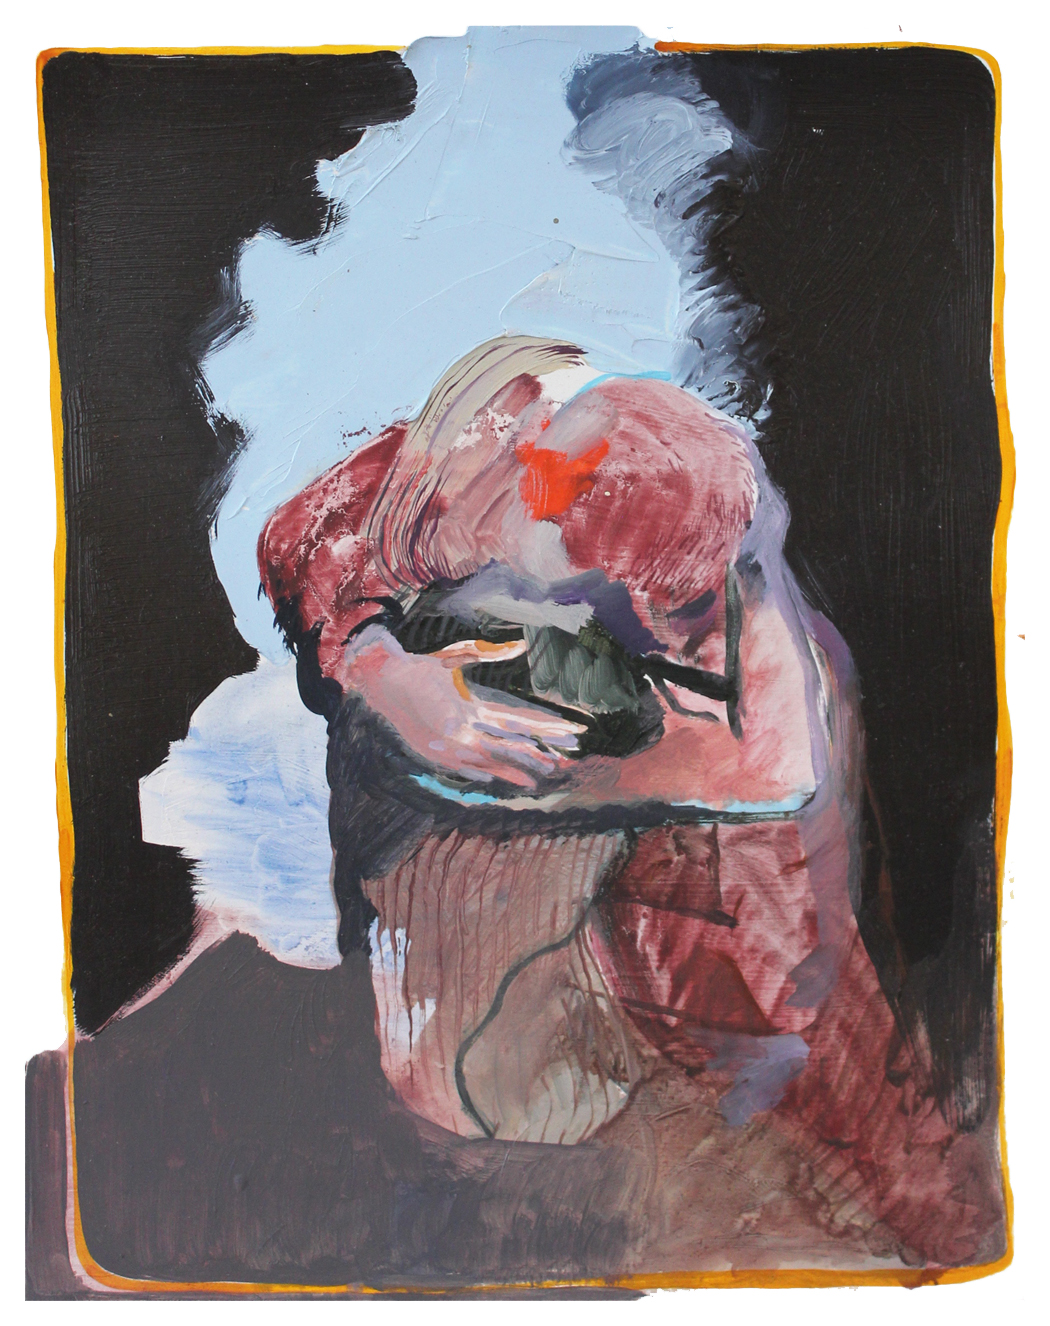 """Chantal Wnuk, Another Painting About Touching, 2015. Oil on paper mounted on wood panel, 14"""" x 11"""""""